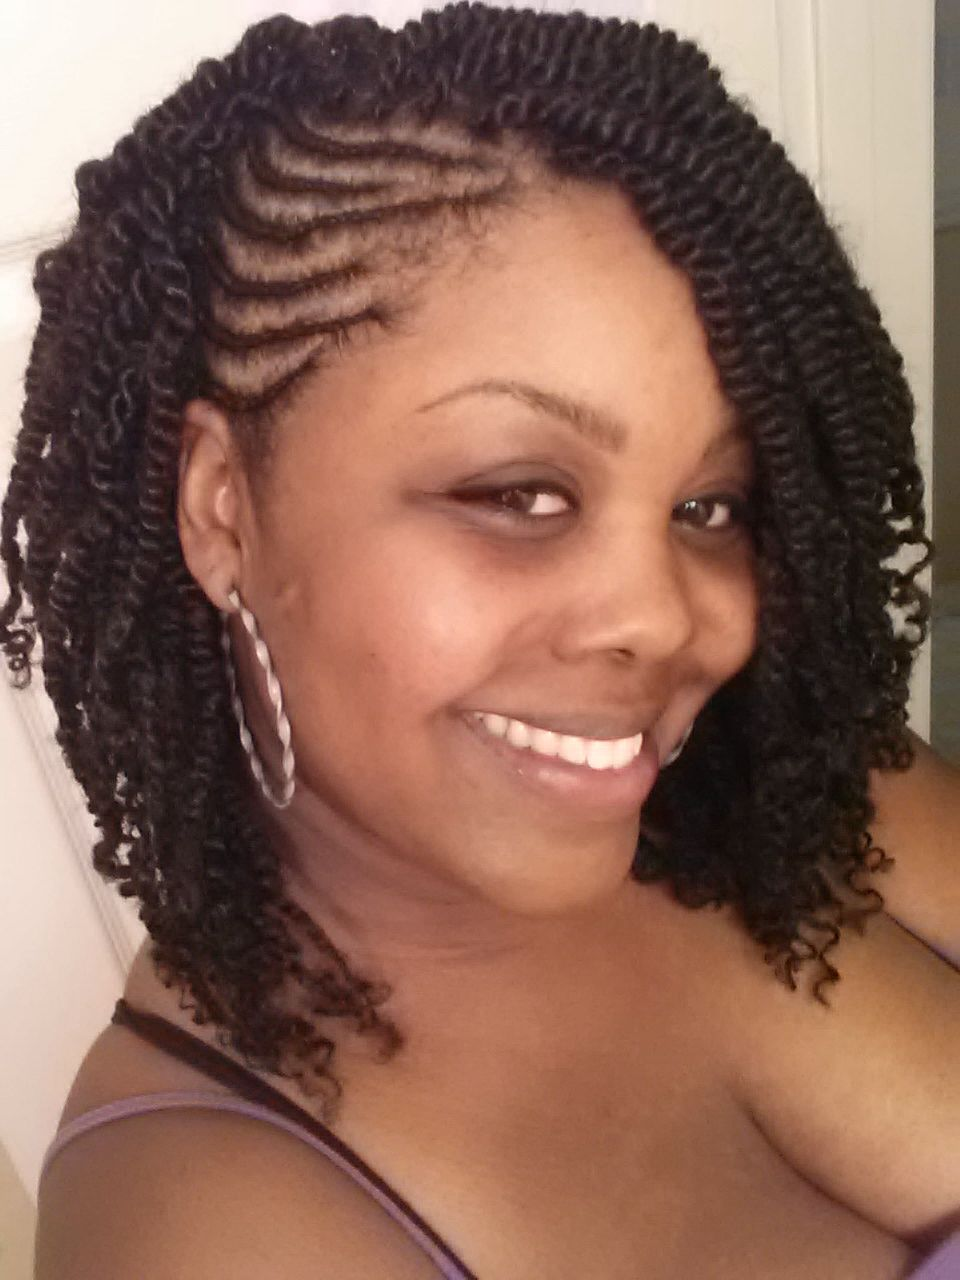 cornrow styles natural black hair cornrows with twists hair style braids 2436 | 82107b9ca9c3af959f3d131dd273d31f